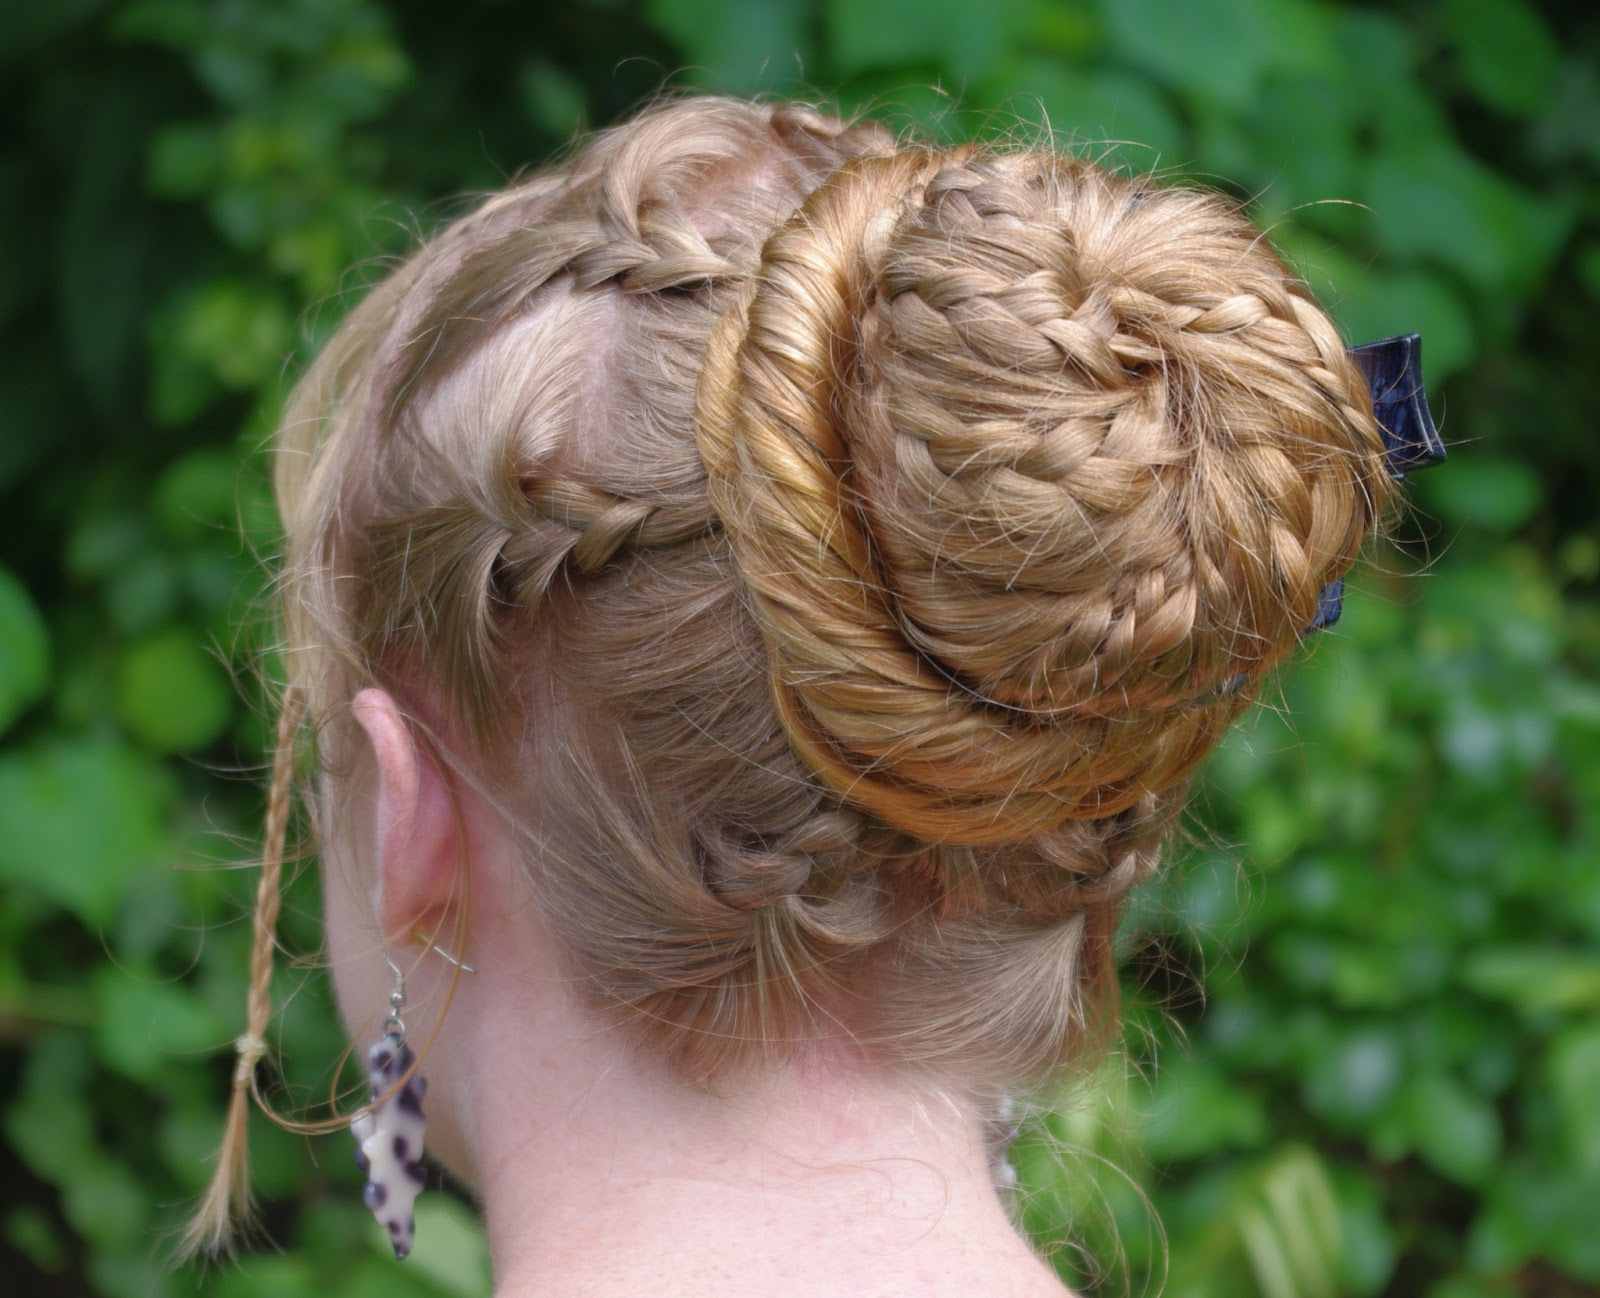 Well Known Cinnamon Bun Braided Hairstyles Intended For Braids & Hairstyles For Super Long Hair: Cinnamon Bun With (View 18 of 20)